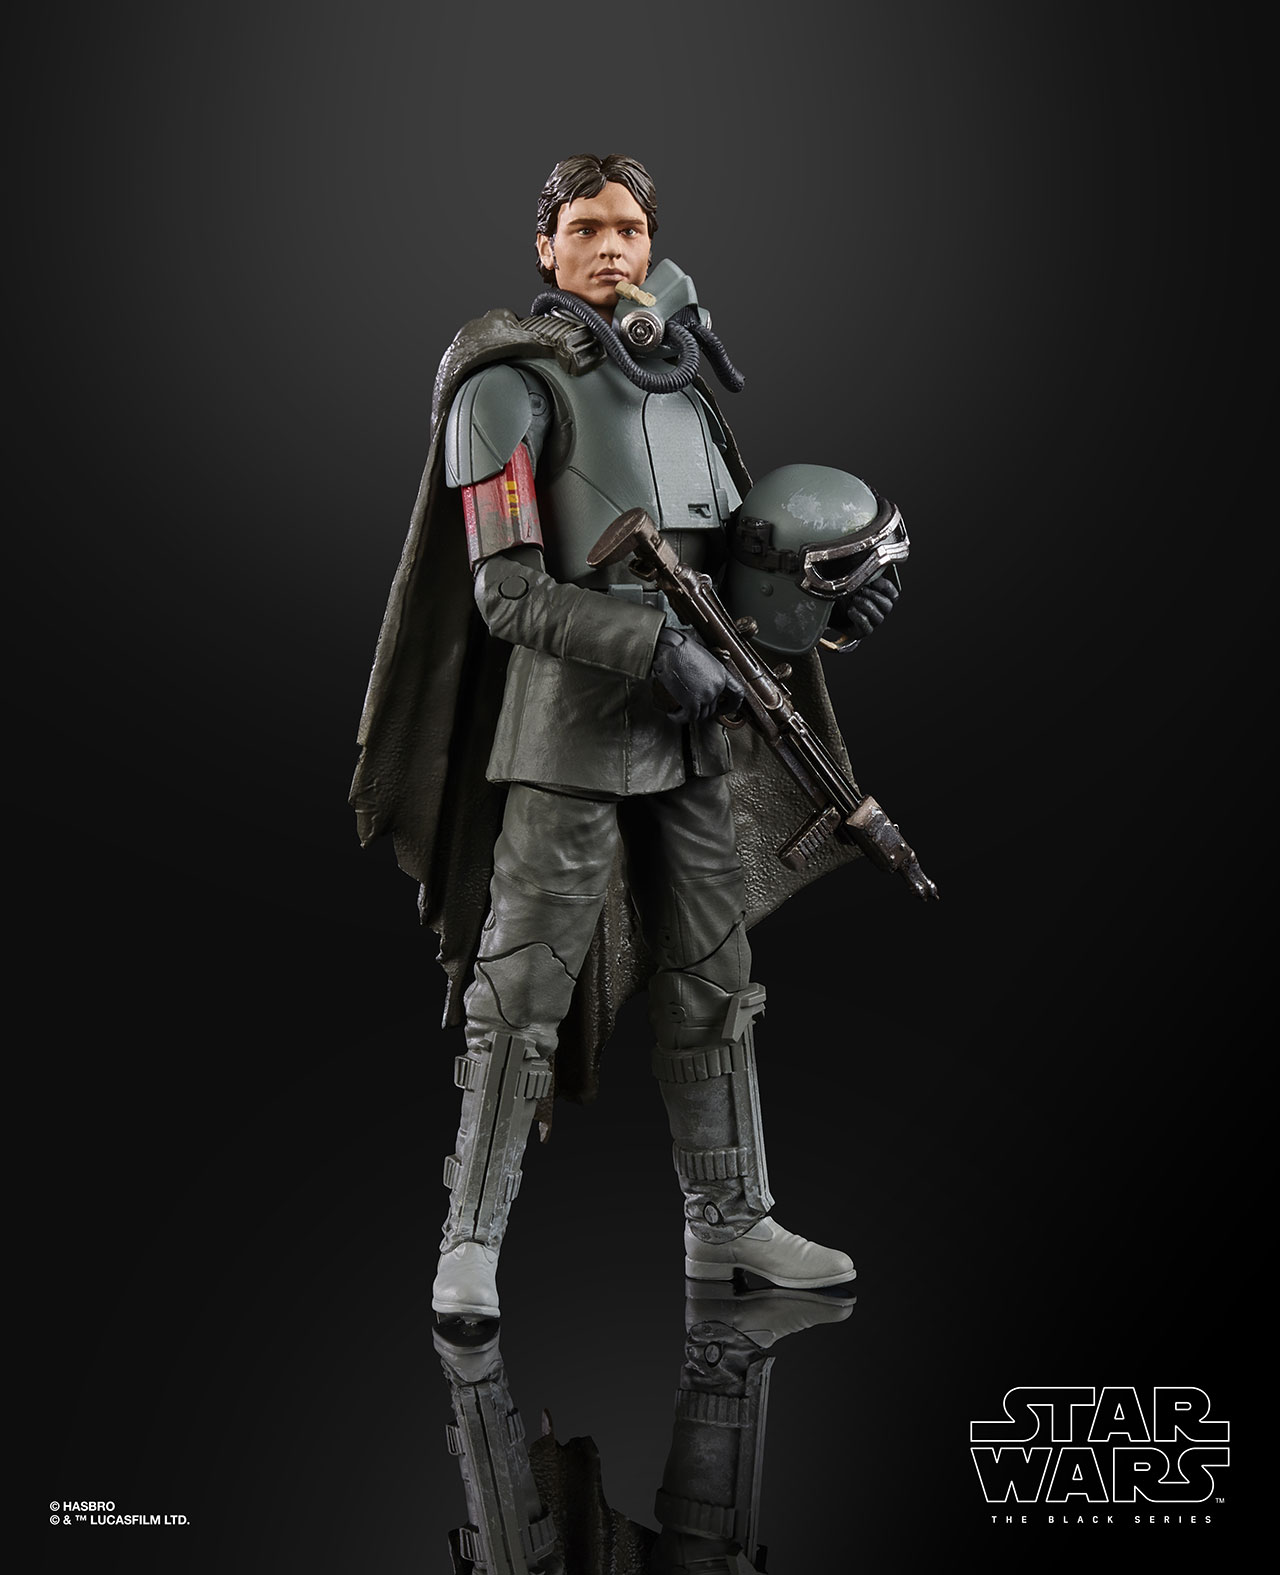 STAR WARS THE BLACK SERIES FIGURE Han Solo Mimban (2)